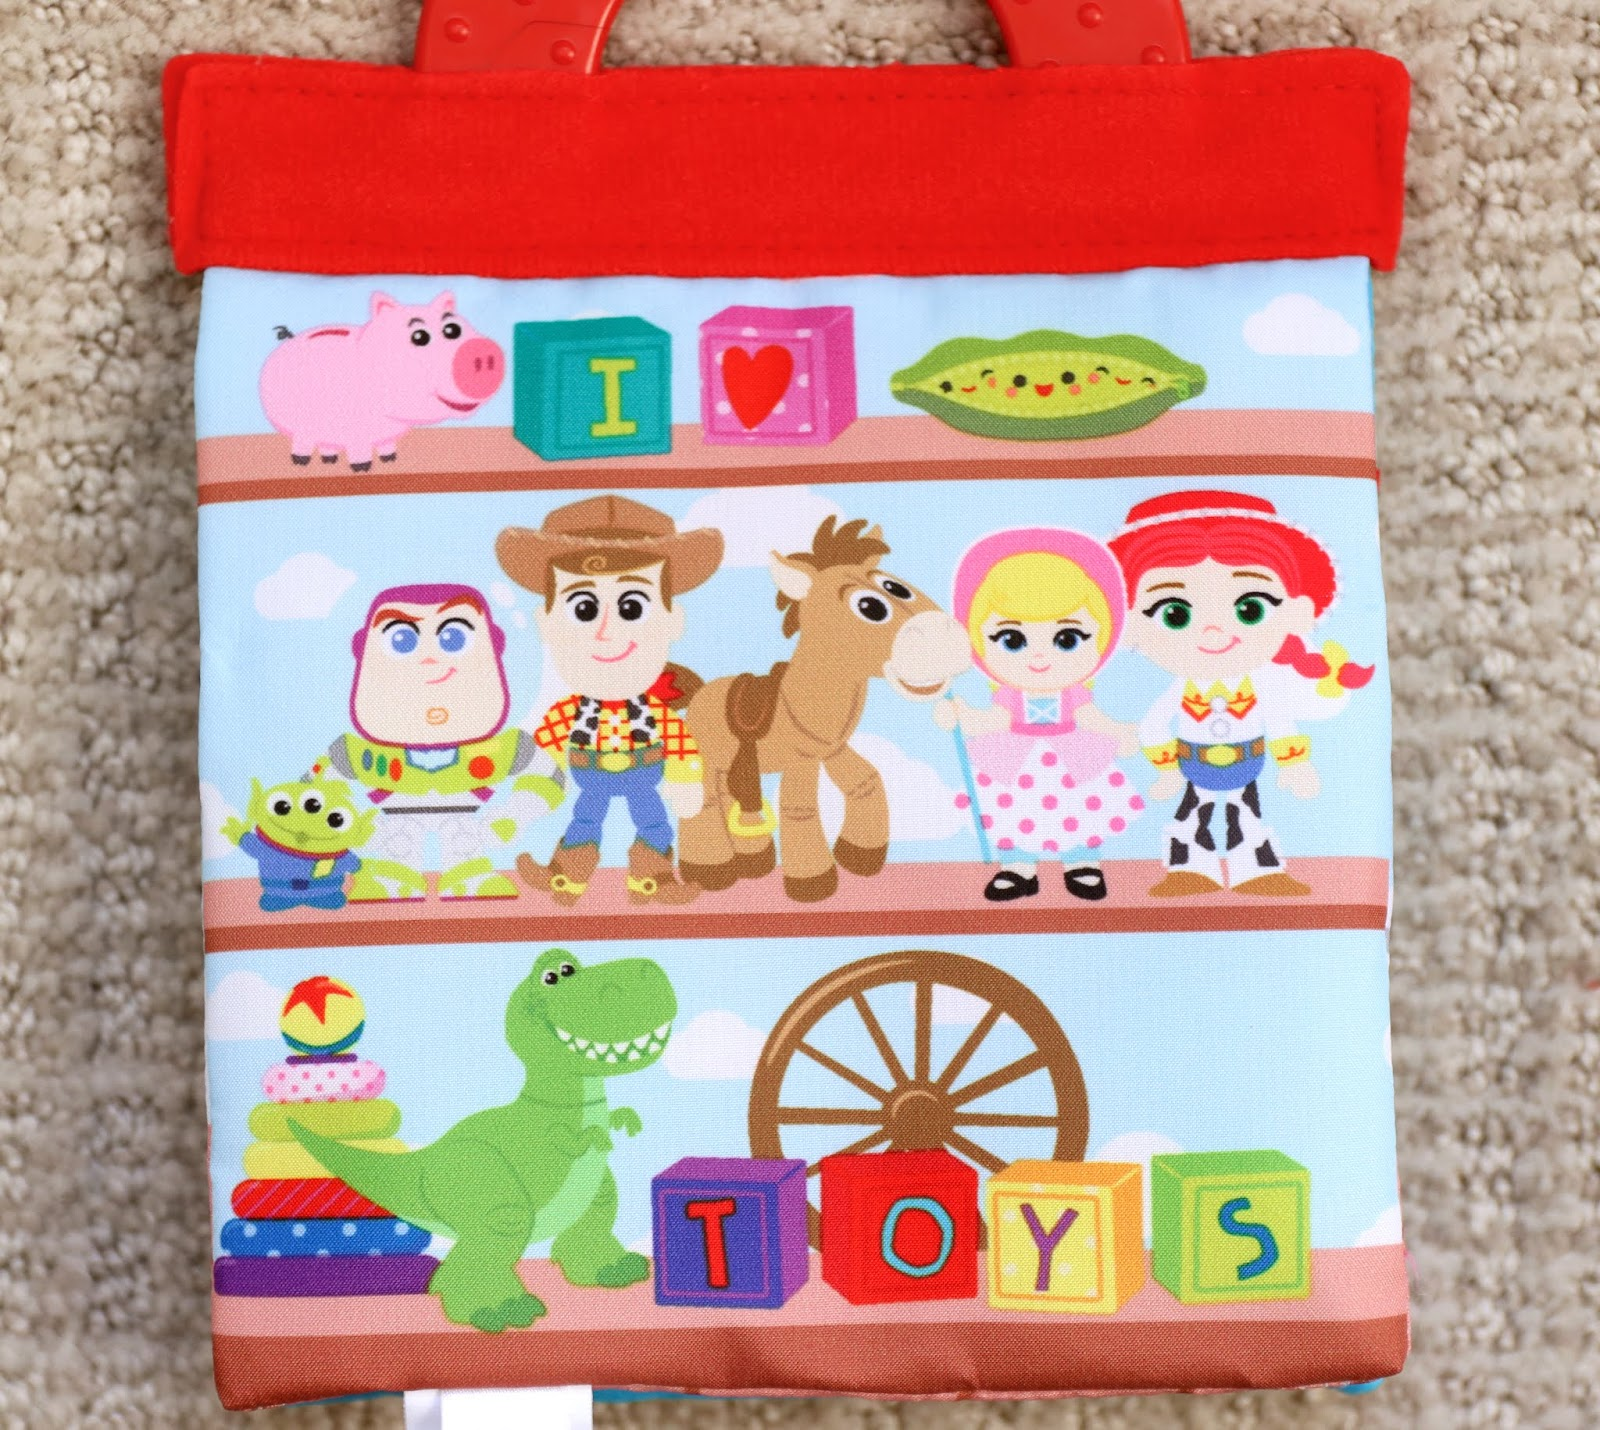 toy story disney baby soft book